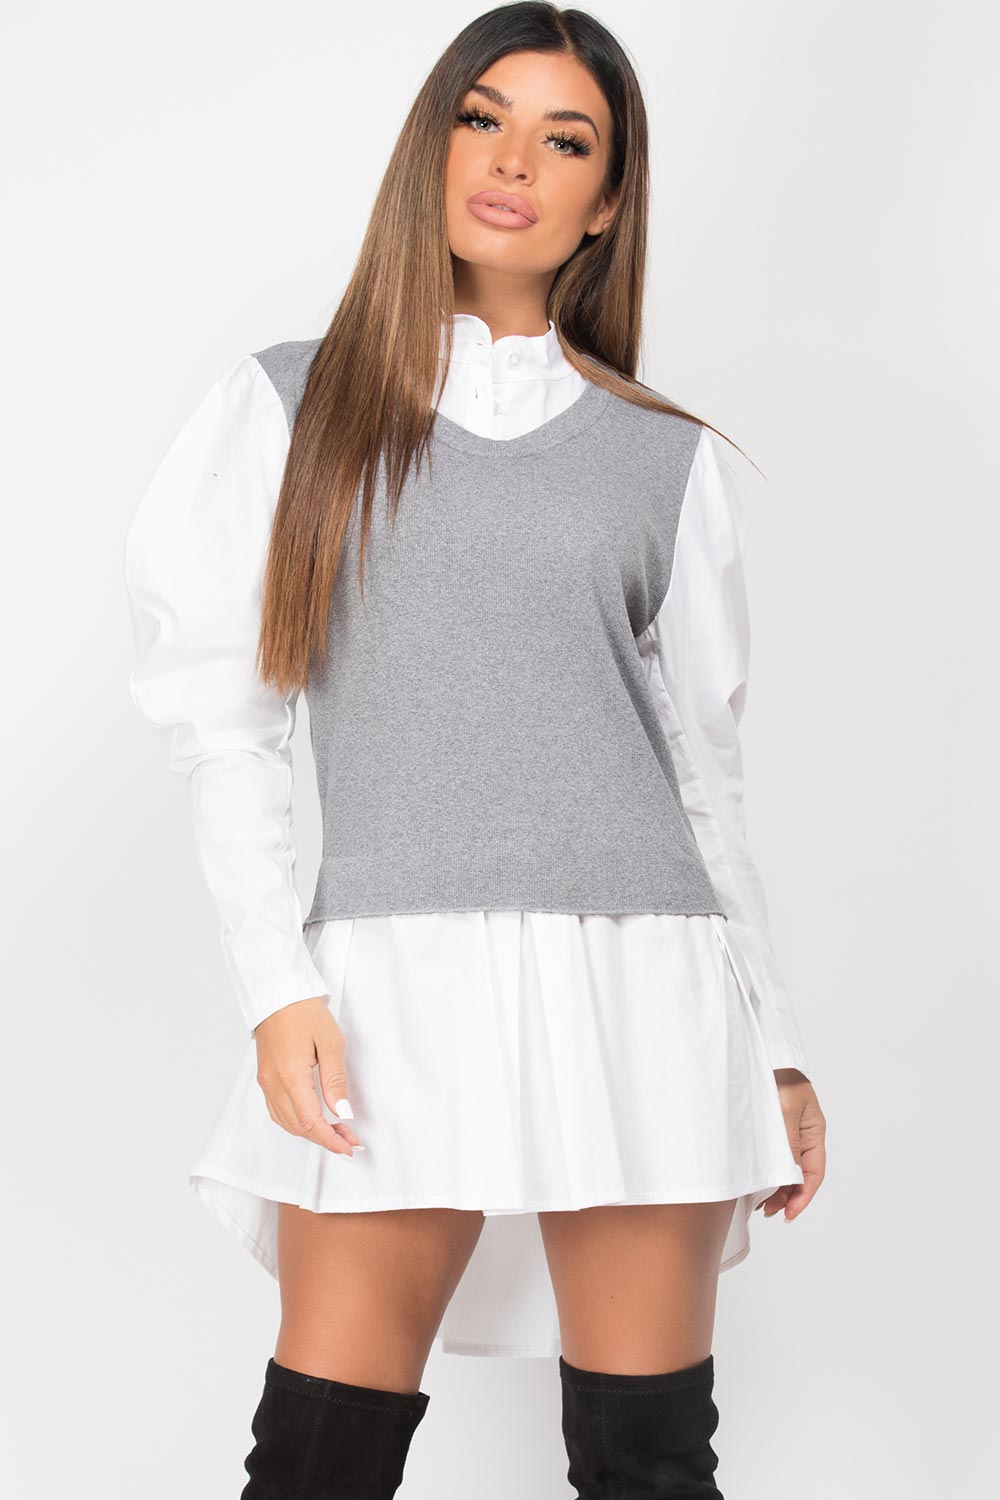 shirt jumper grey white